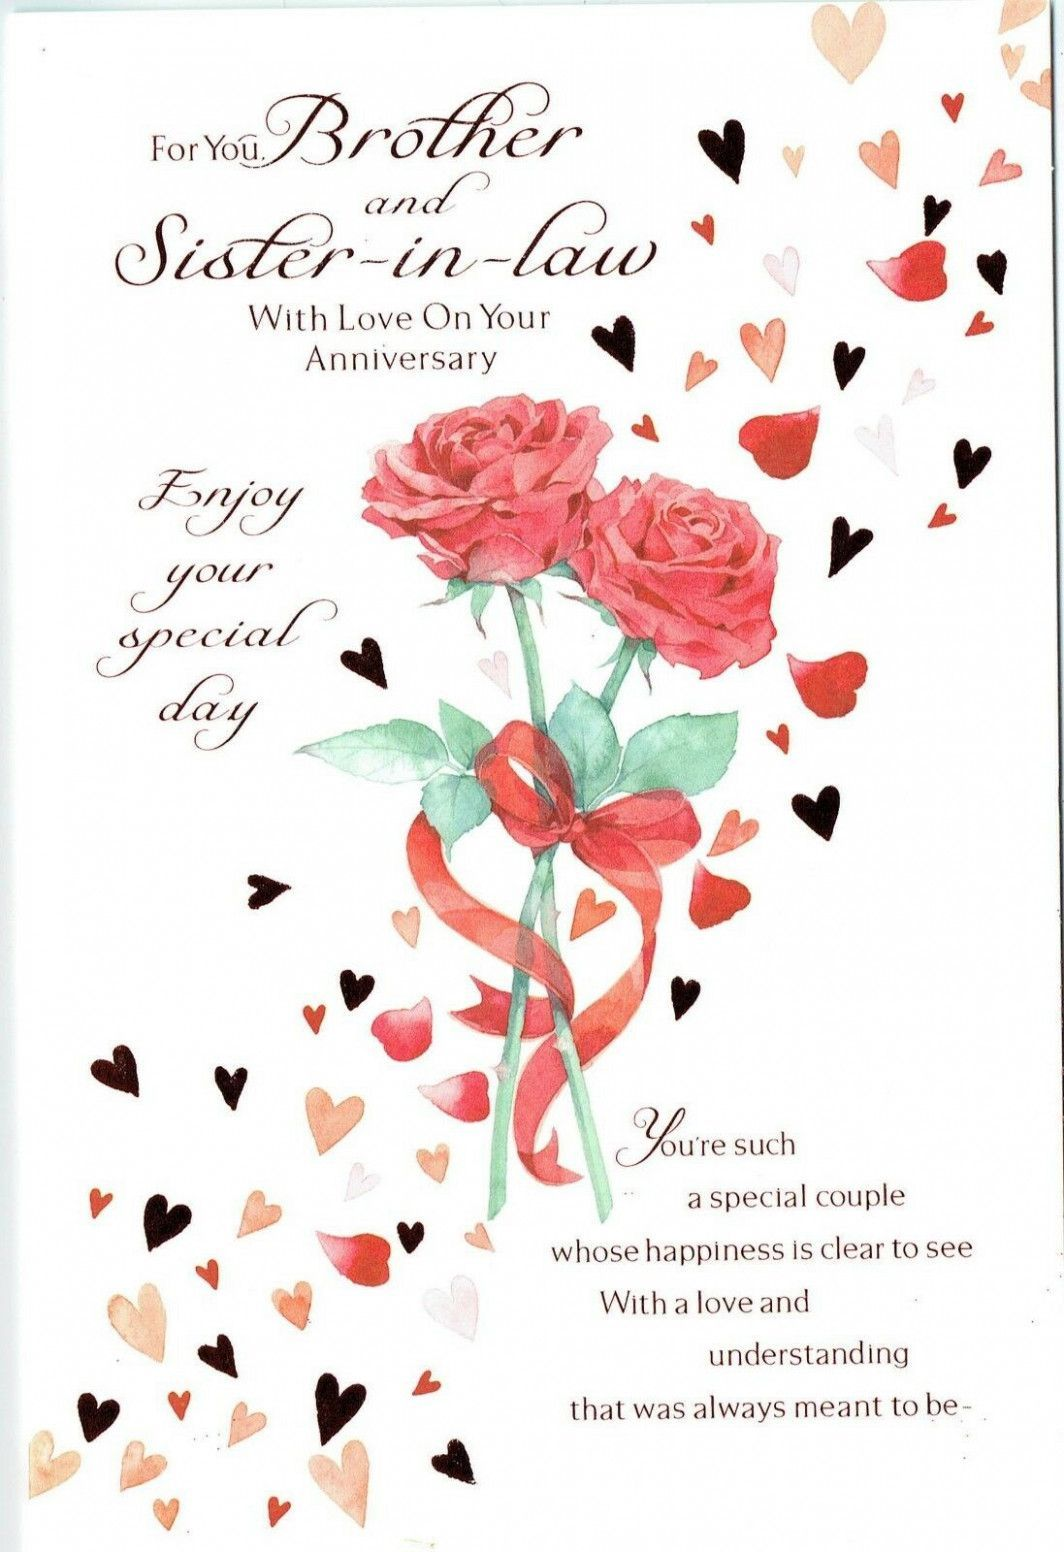 Anniversary Card Verses For Sister And Brother In Law In 2021 Wedding Anniversary Cards Anniversary Cards Anniversary Verses